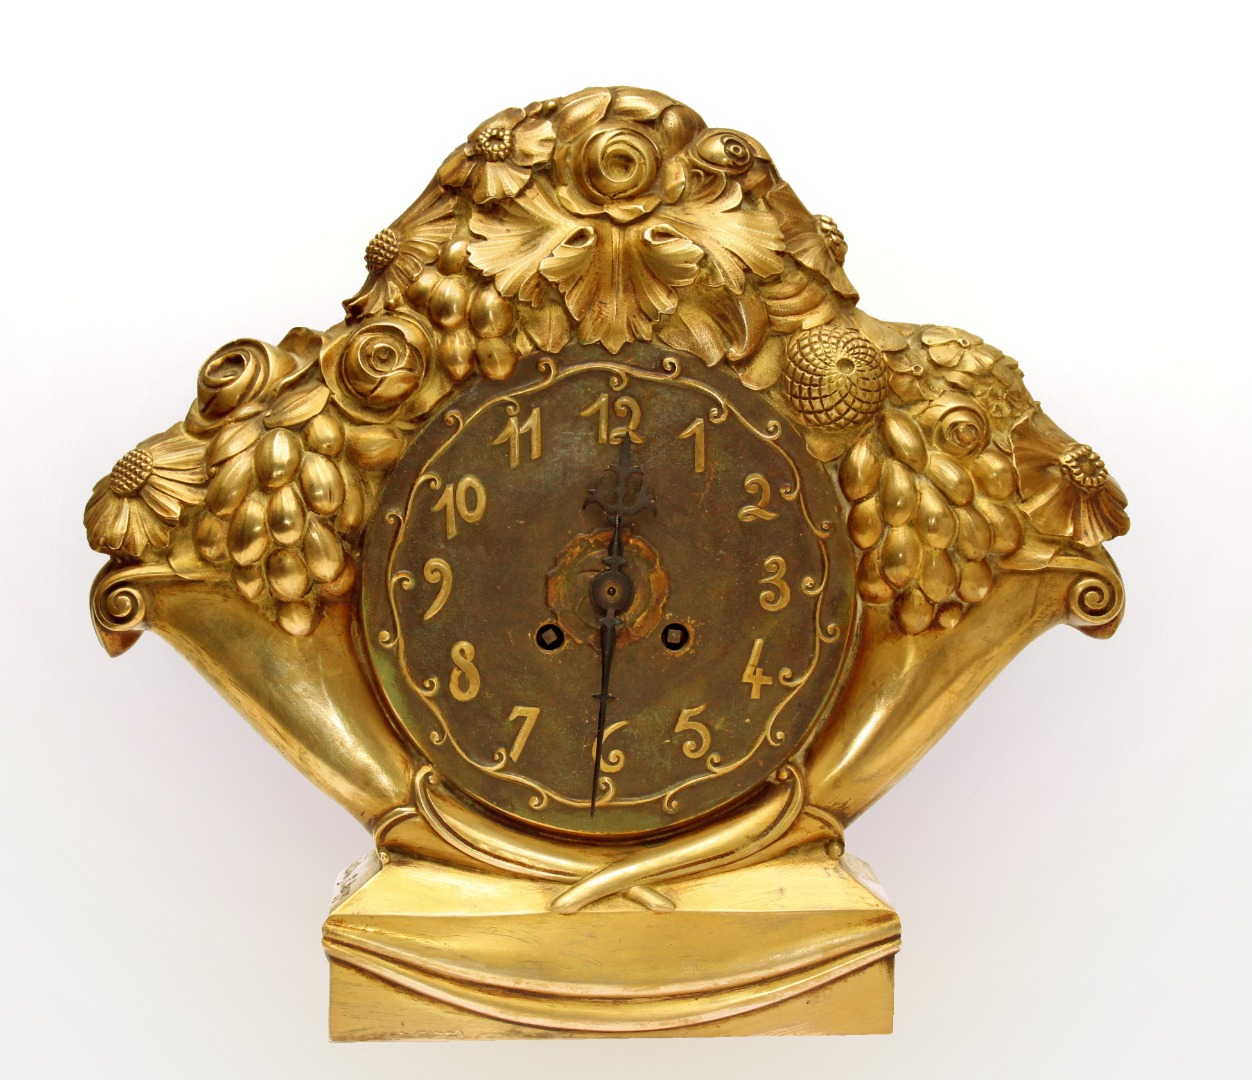 ART DECO PERIOD CLOCK by Eric Bagge (1890-1978)